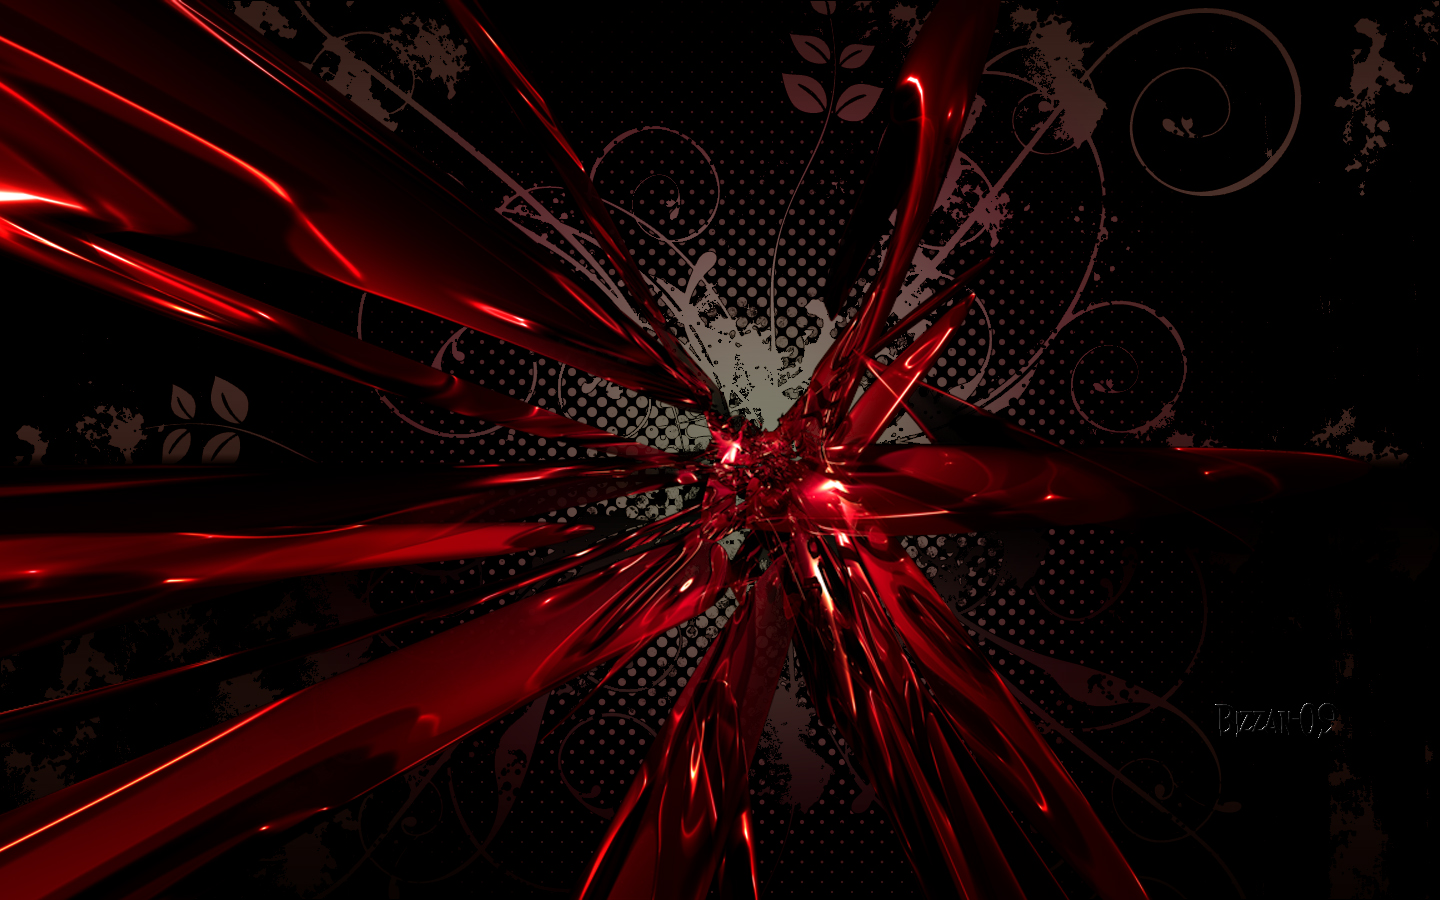 Free Download Abstract Wallpapers 1080p Red 1440x900 For